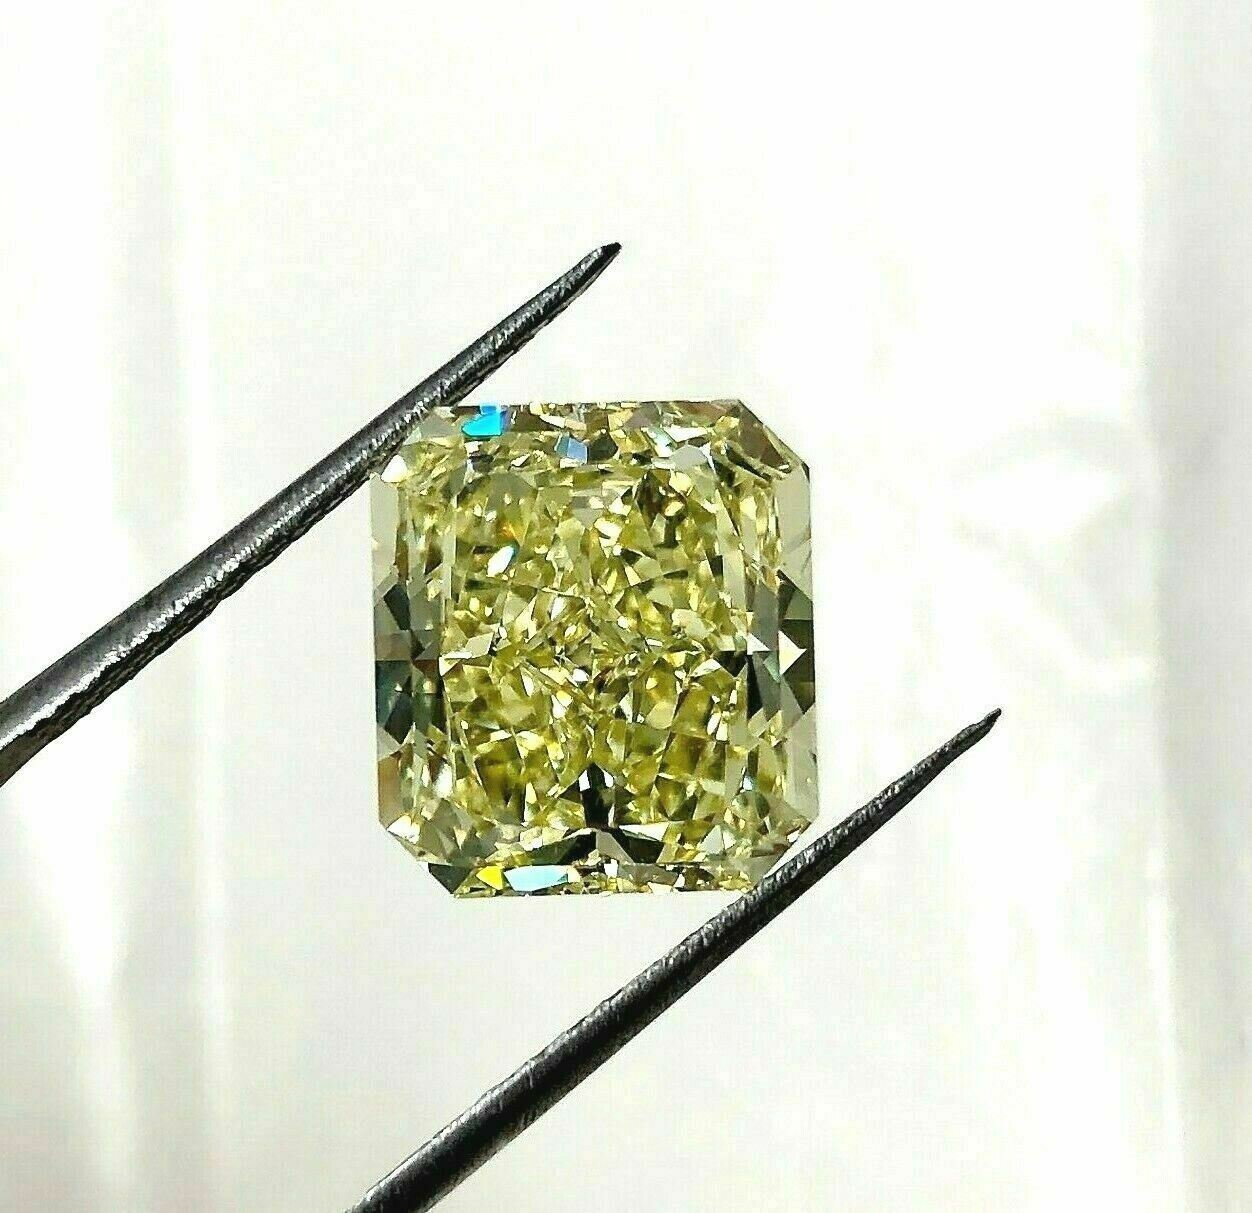 Loose GIA Diamond - 7.59 Carats Fancy Yellow GIA VVS1 Radiant Cut Diamond